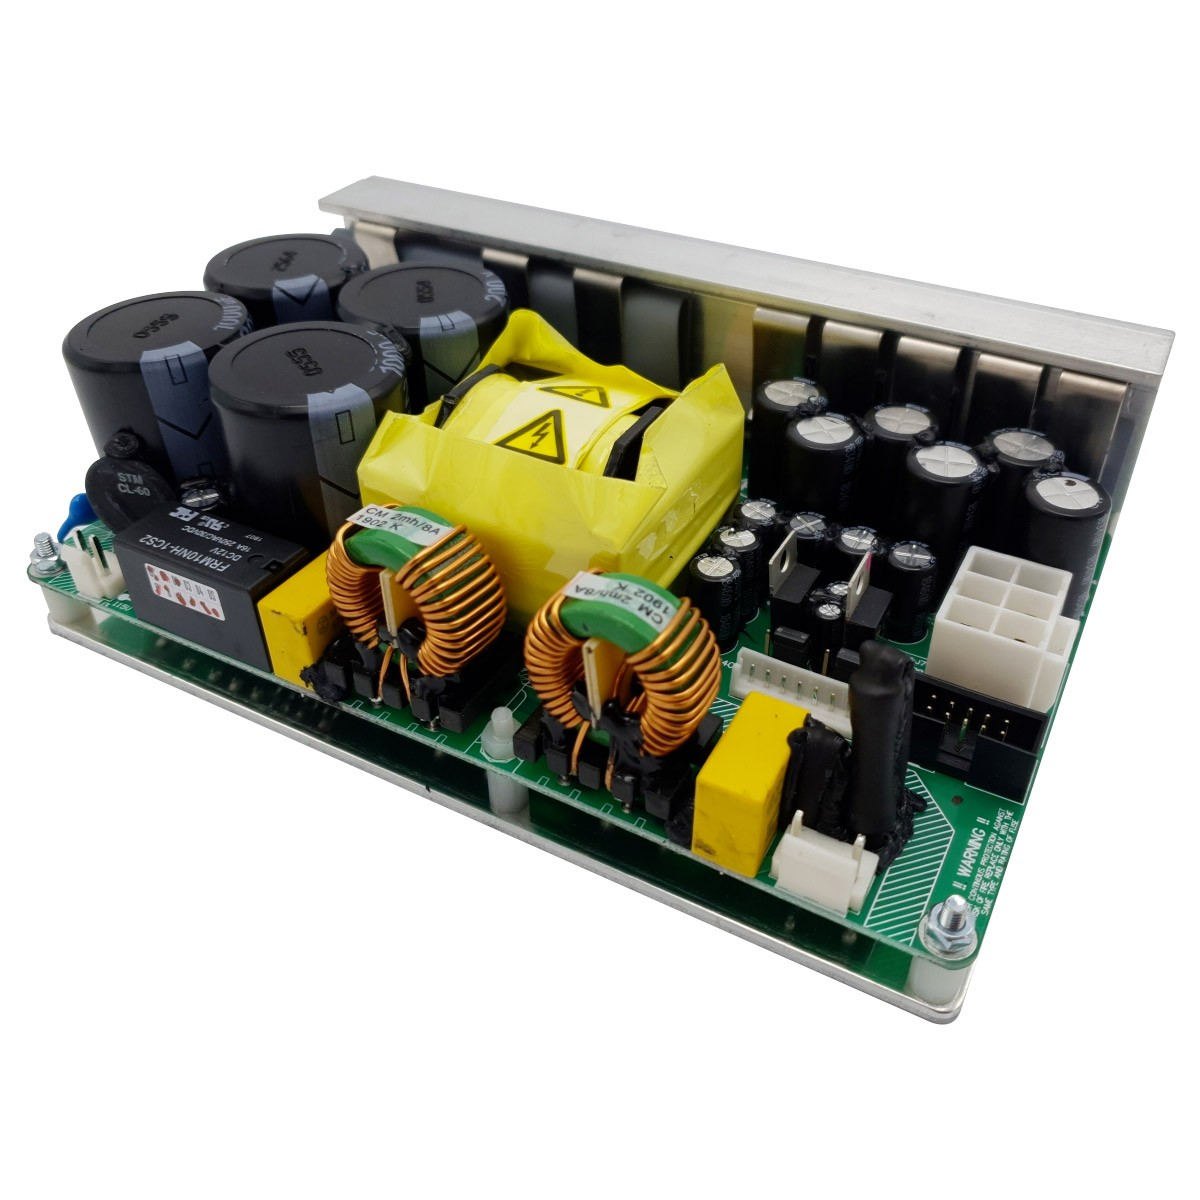 HYPEX SMPS1200A100 Switching Power Supply Module 1200W 2x36V